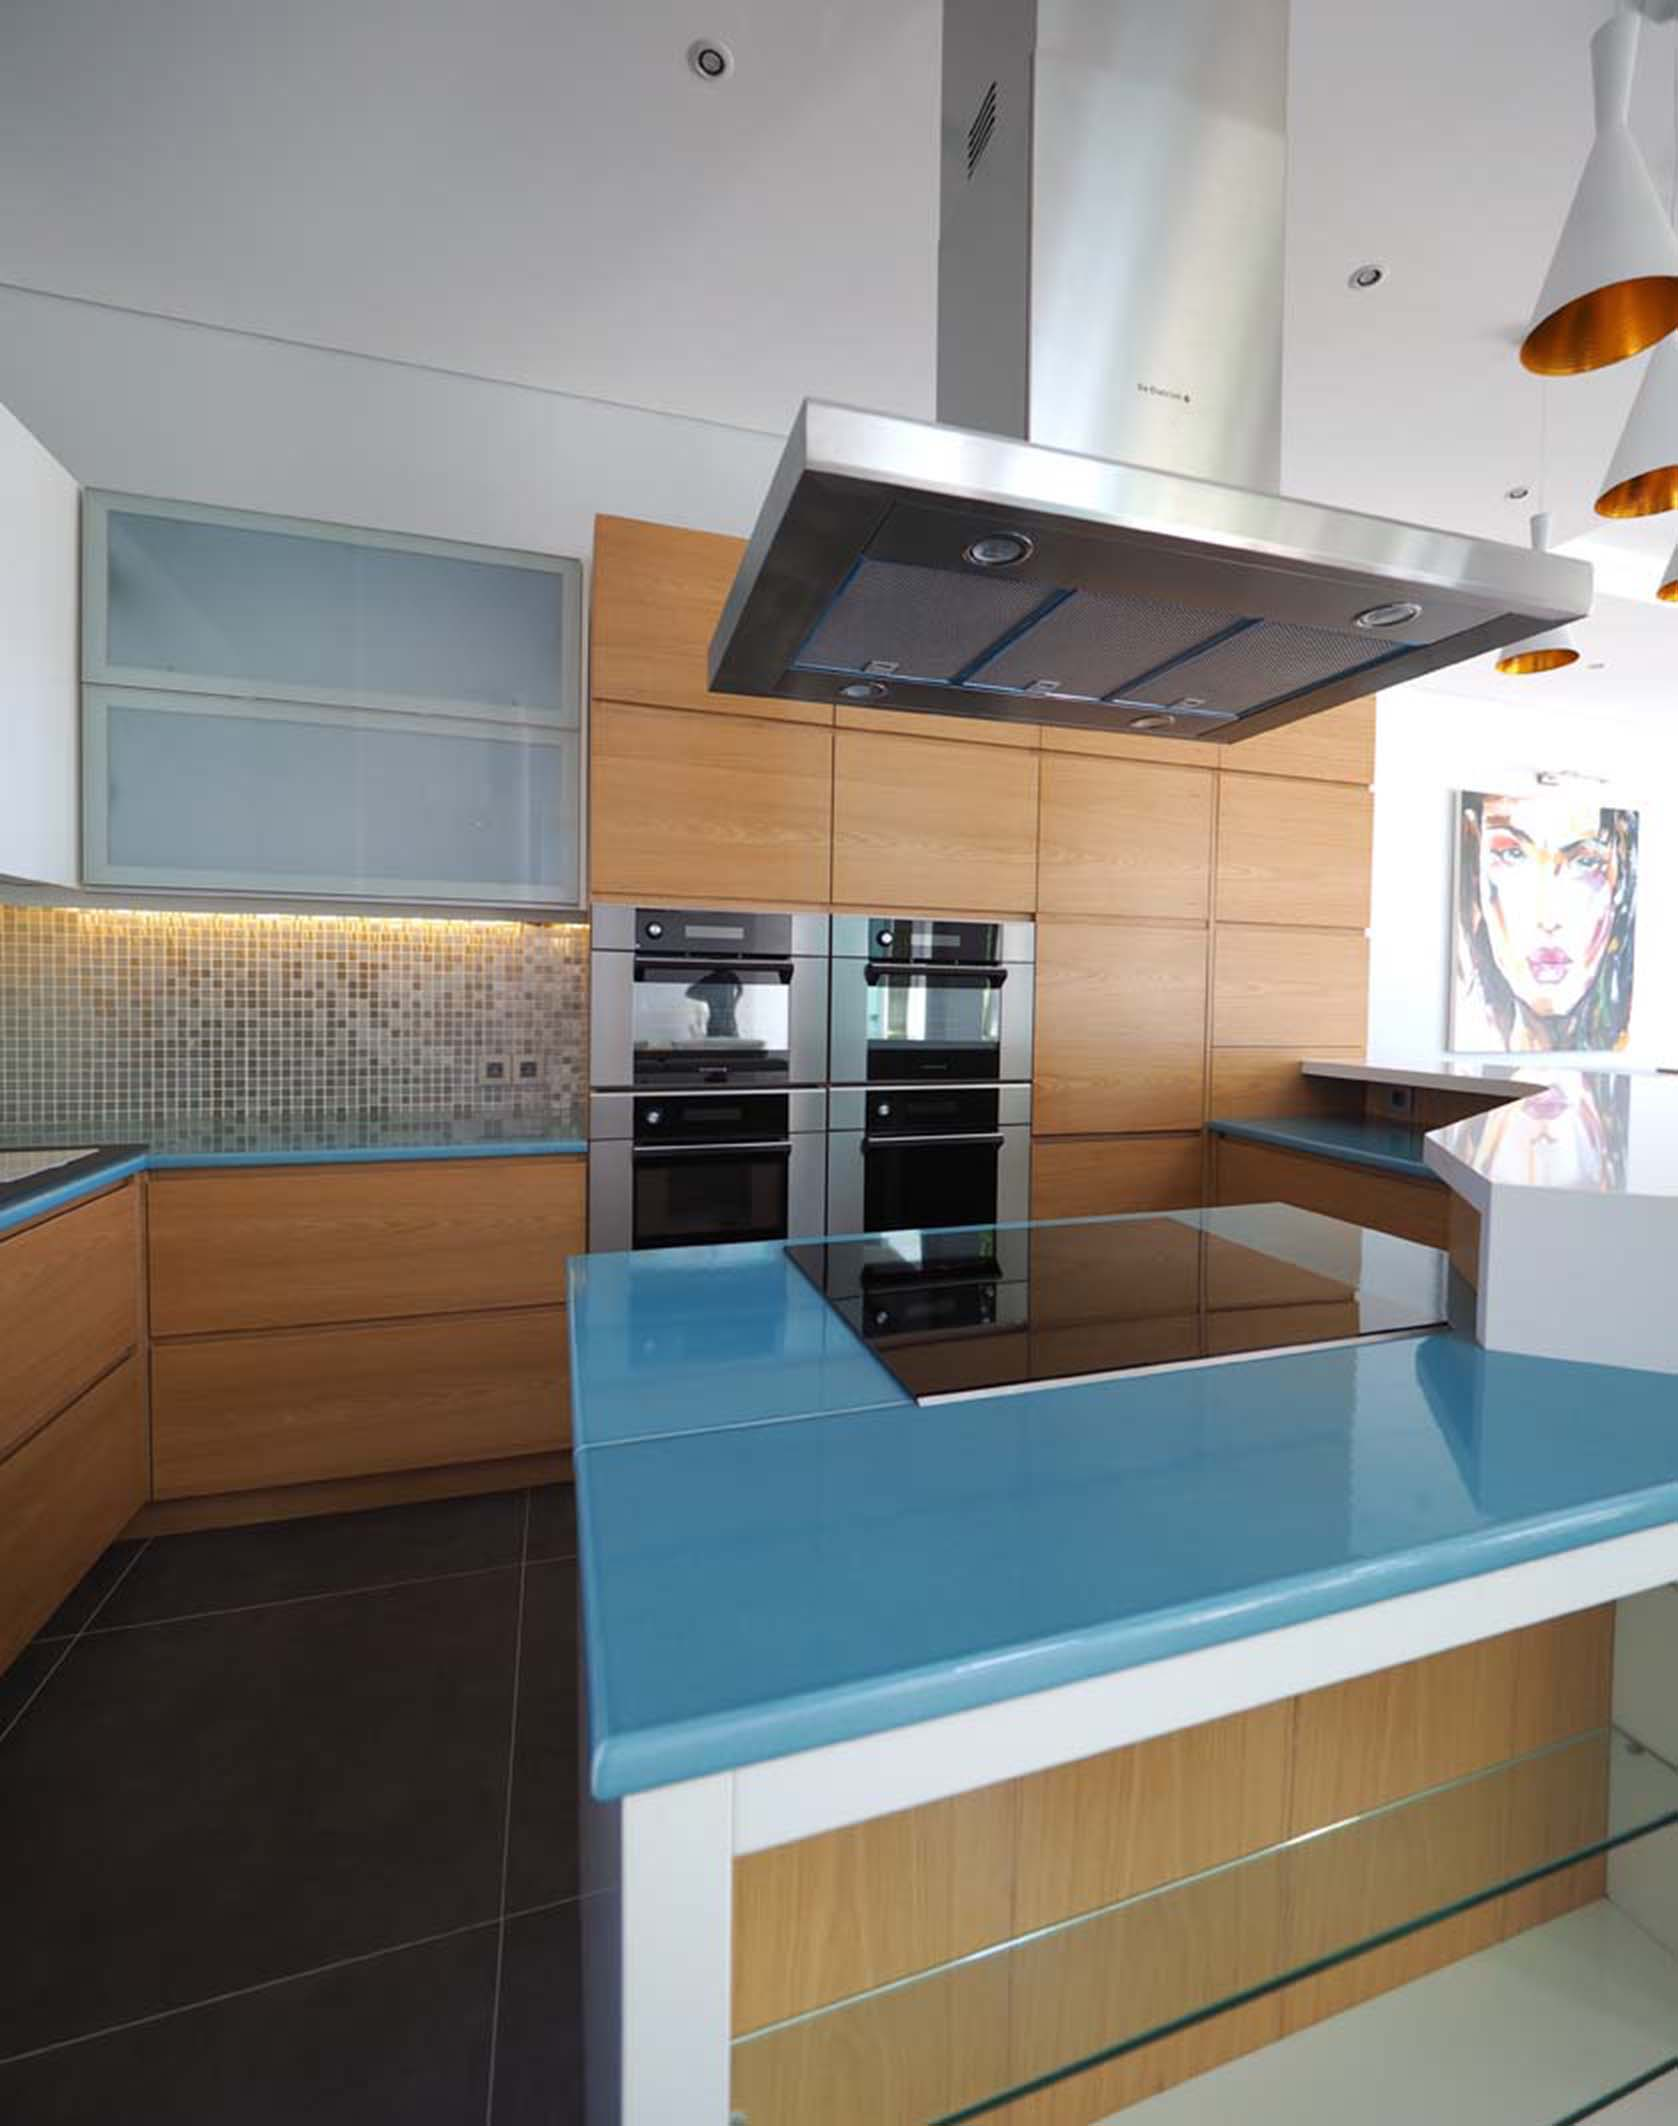 Blue-white-teak-nature-couleur-lave-volcan-Kitchen-cuisine-sur-mesure-modern-émaille-céramique-France-Luxe-design